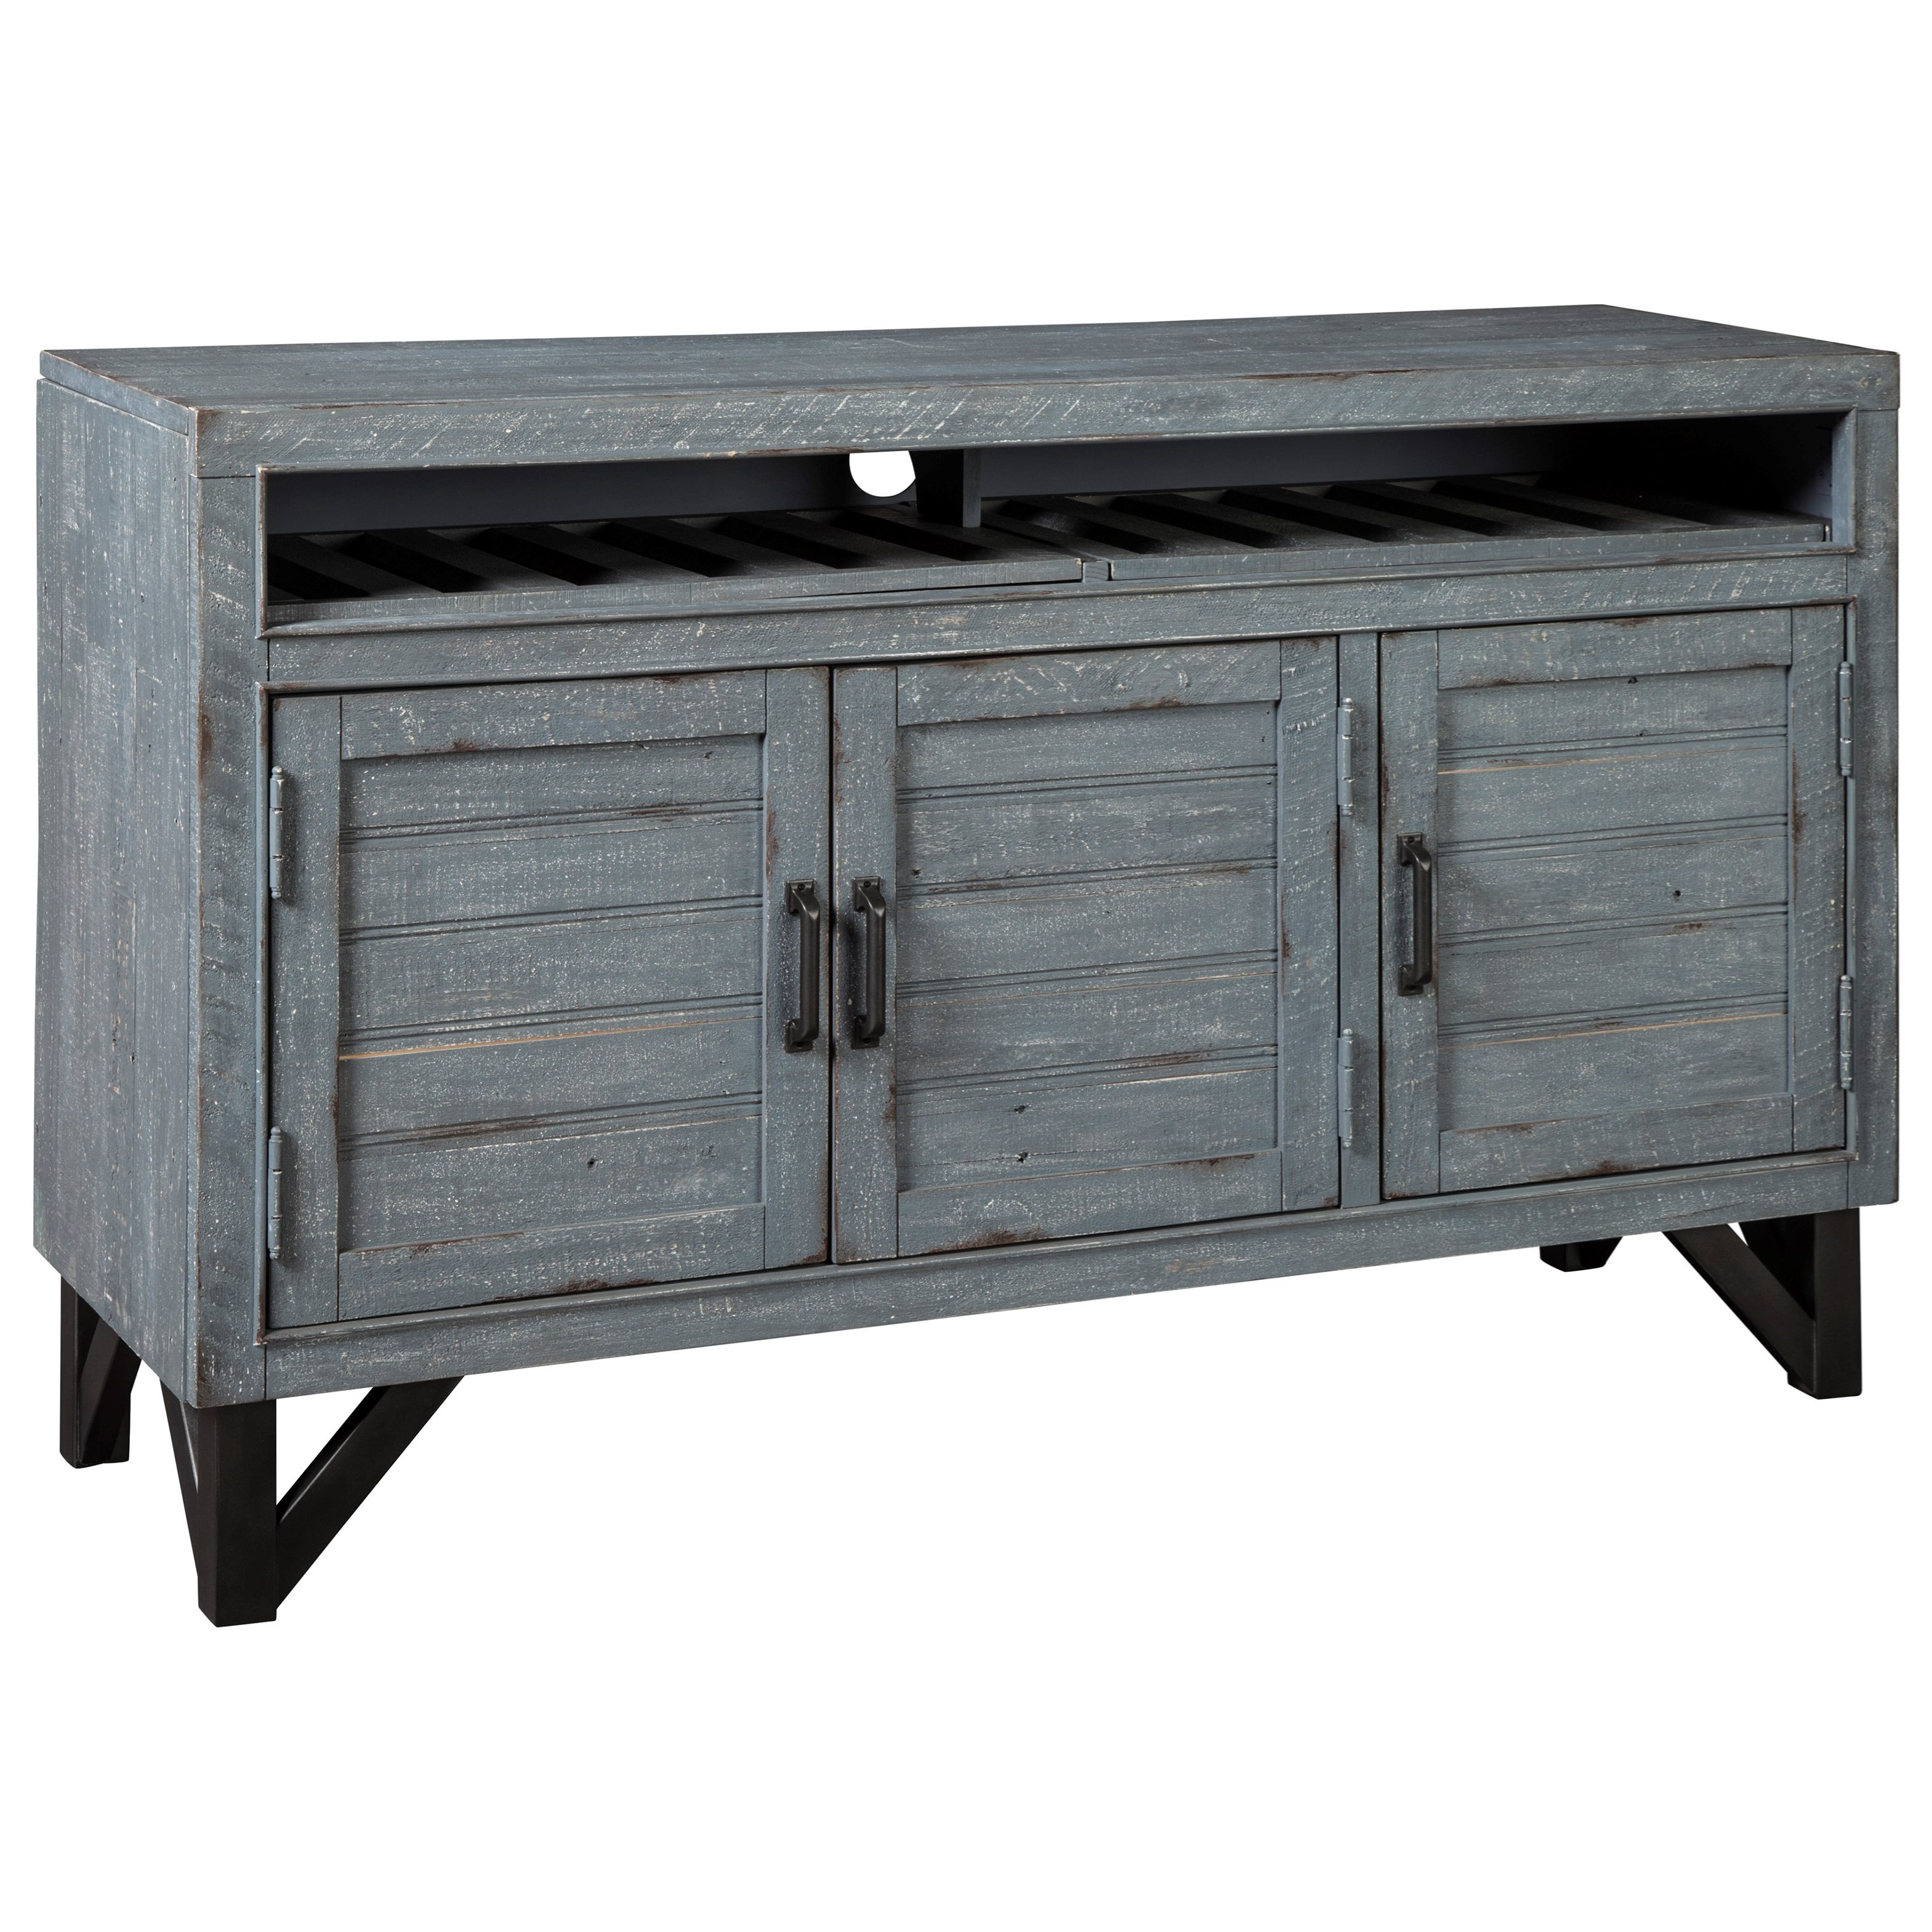 Jainworth Accent Cabinet by Signature at Walker's Furniture